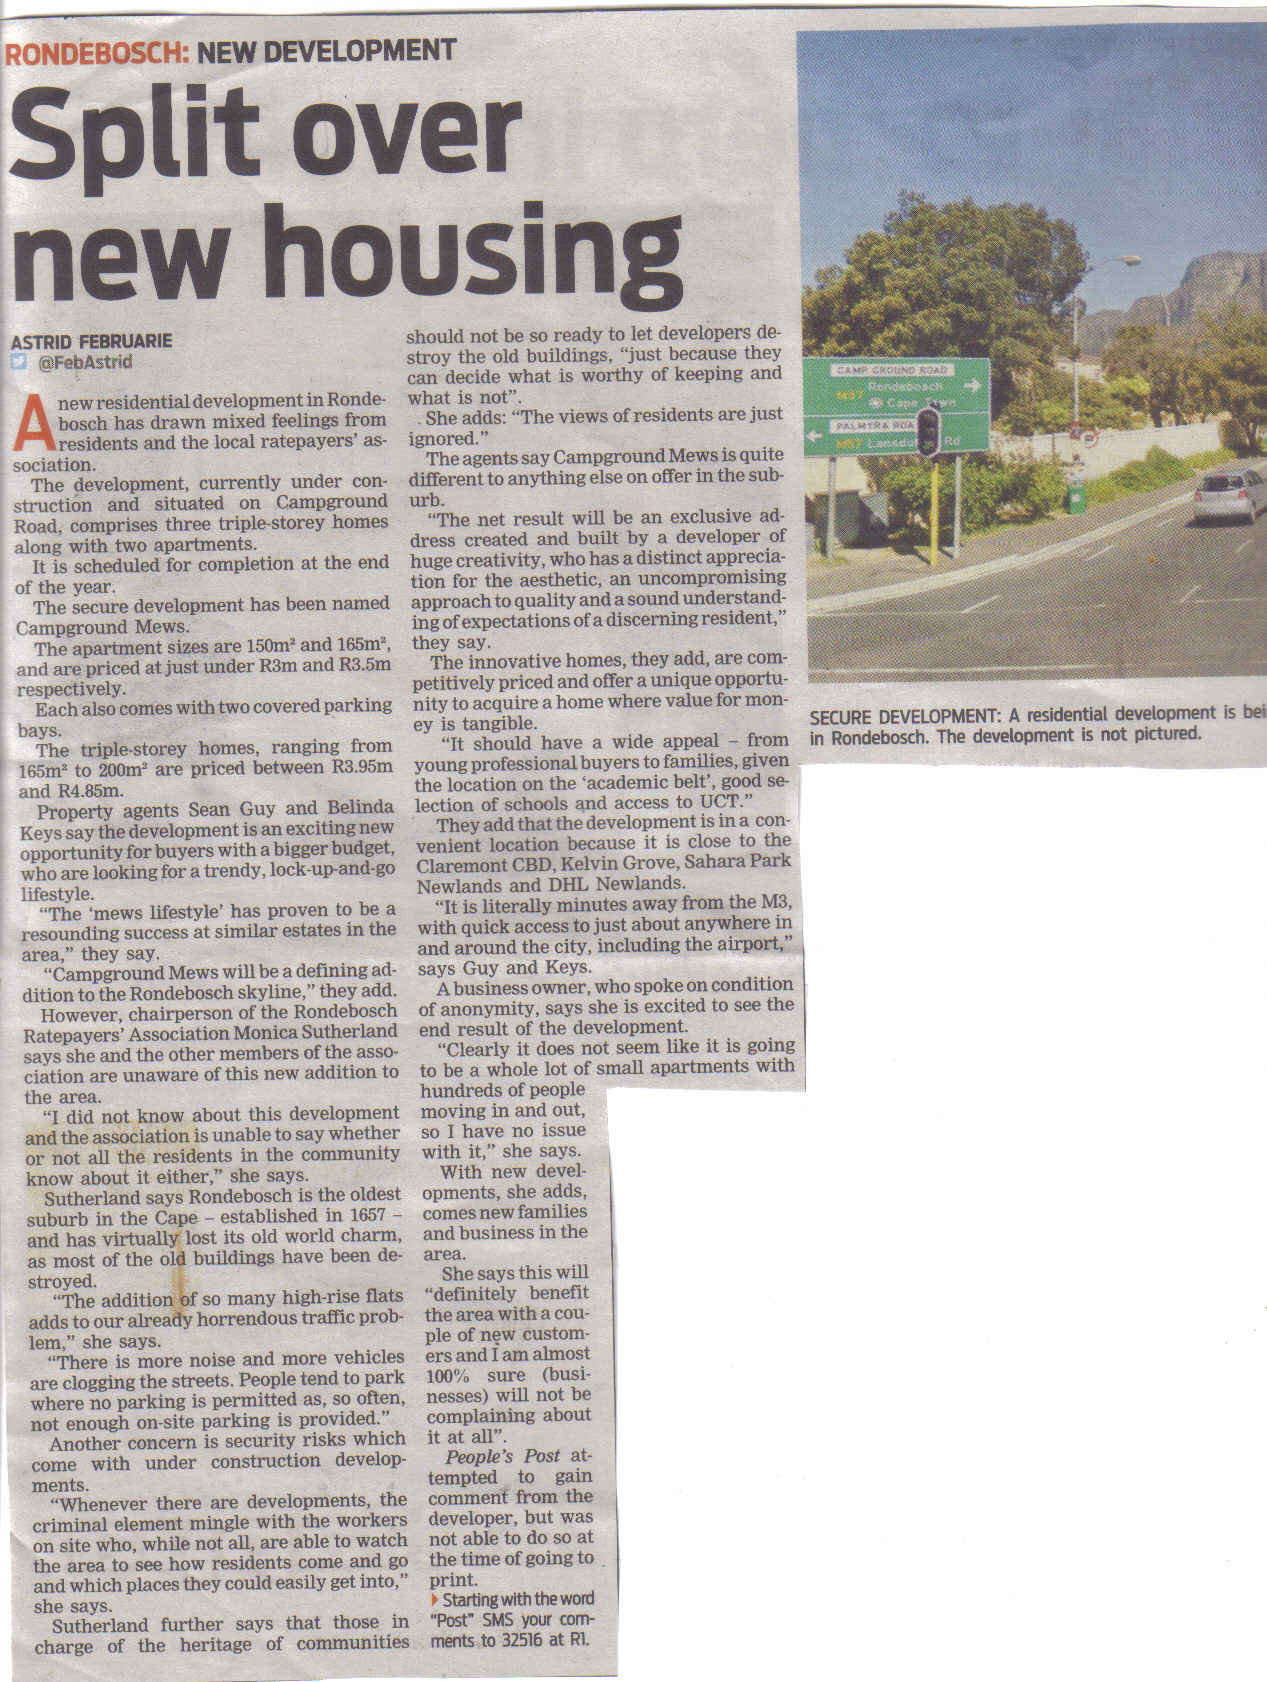 Split over new housing (People's Post, 6 March 2014)